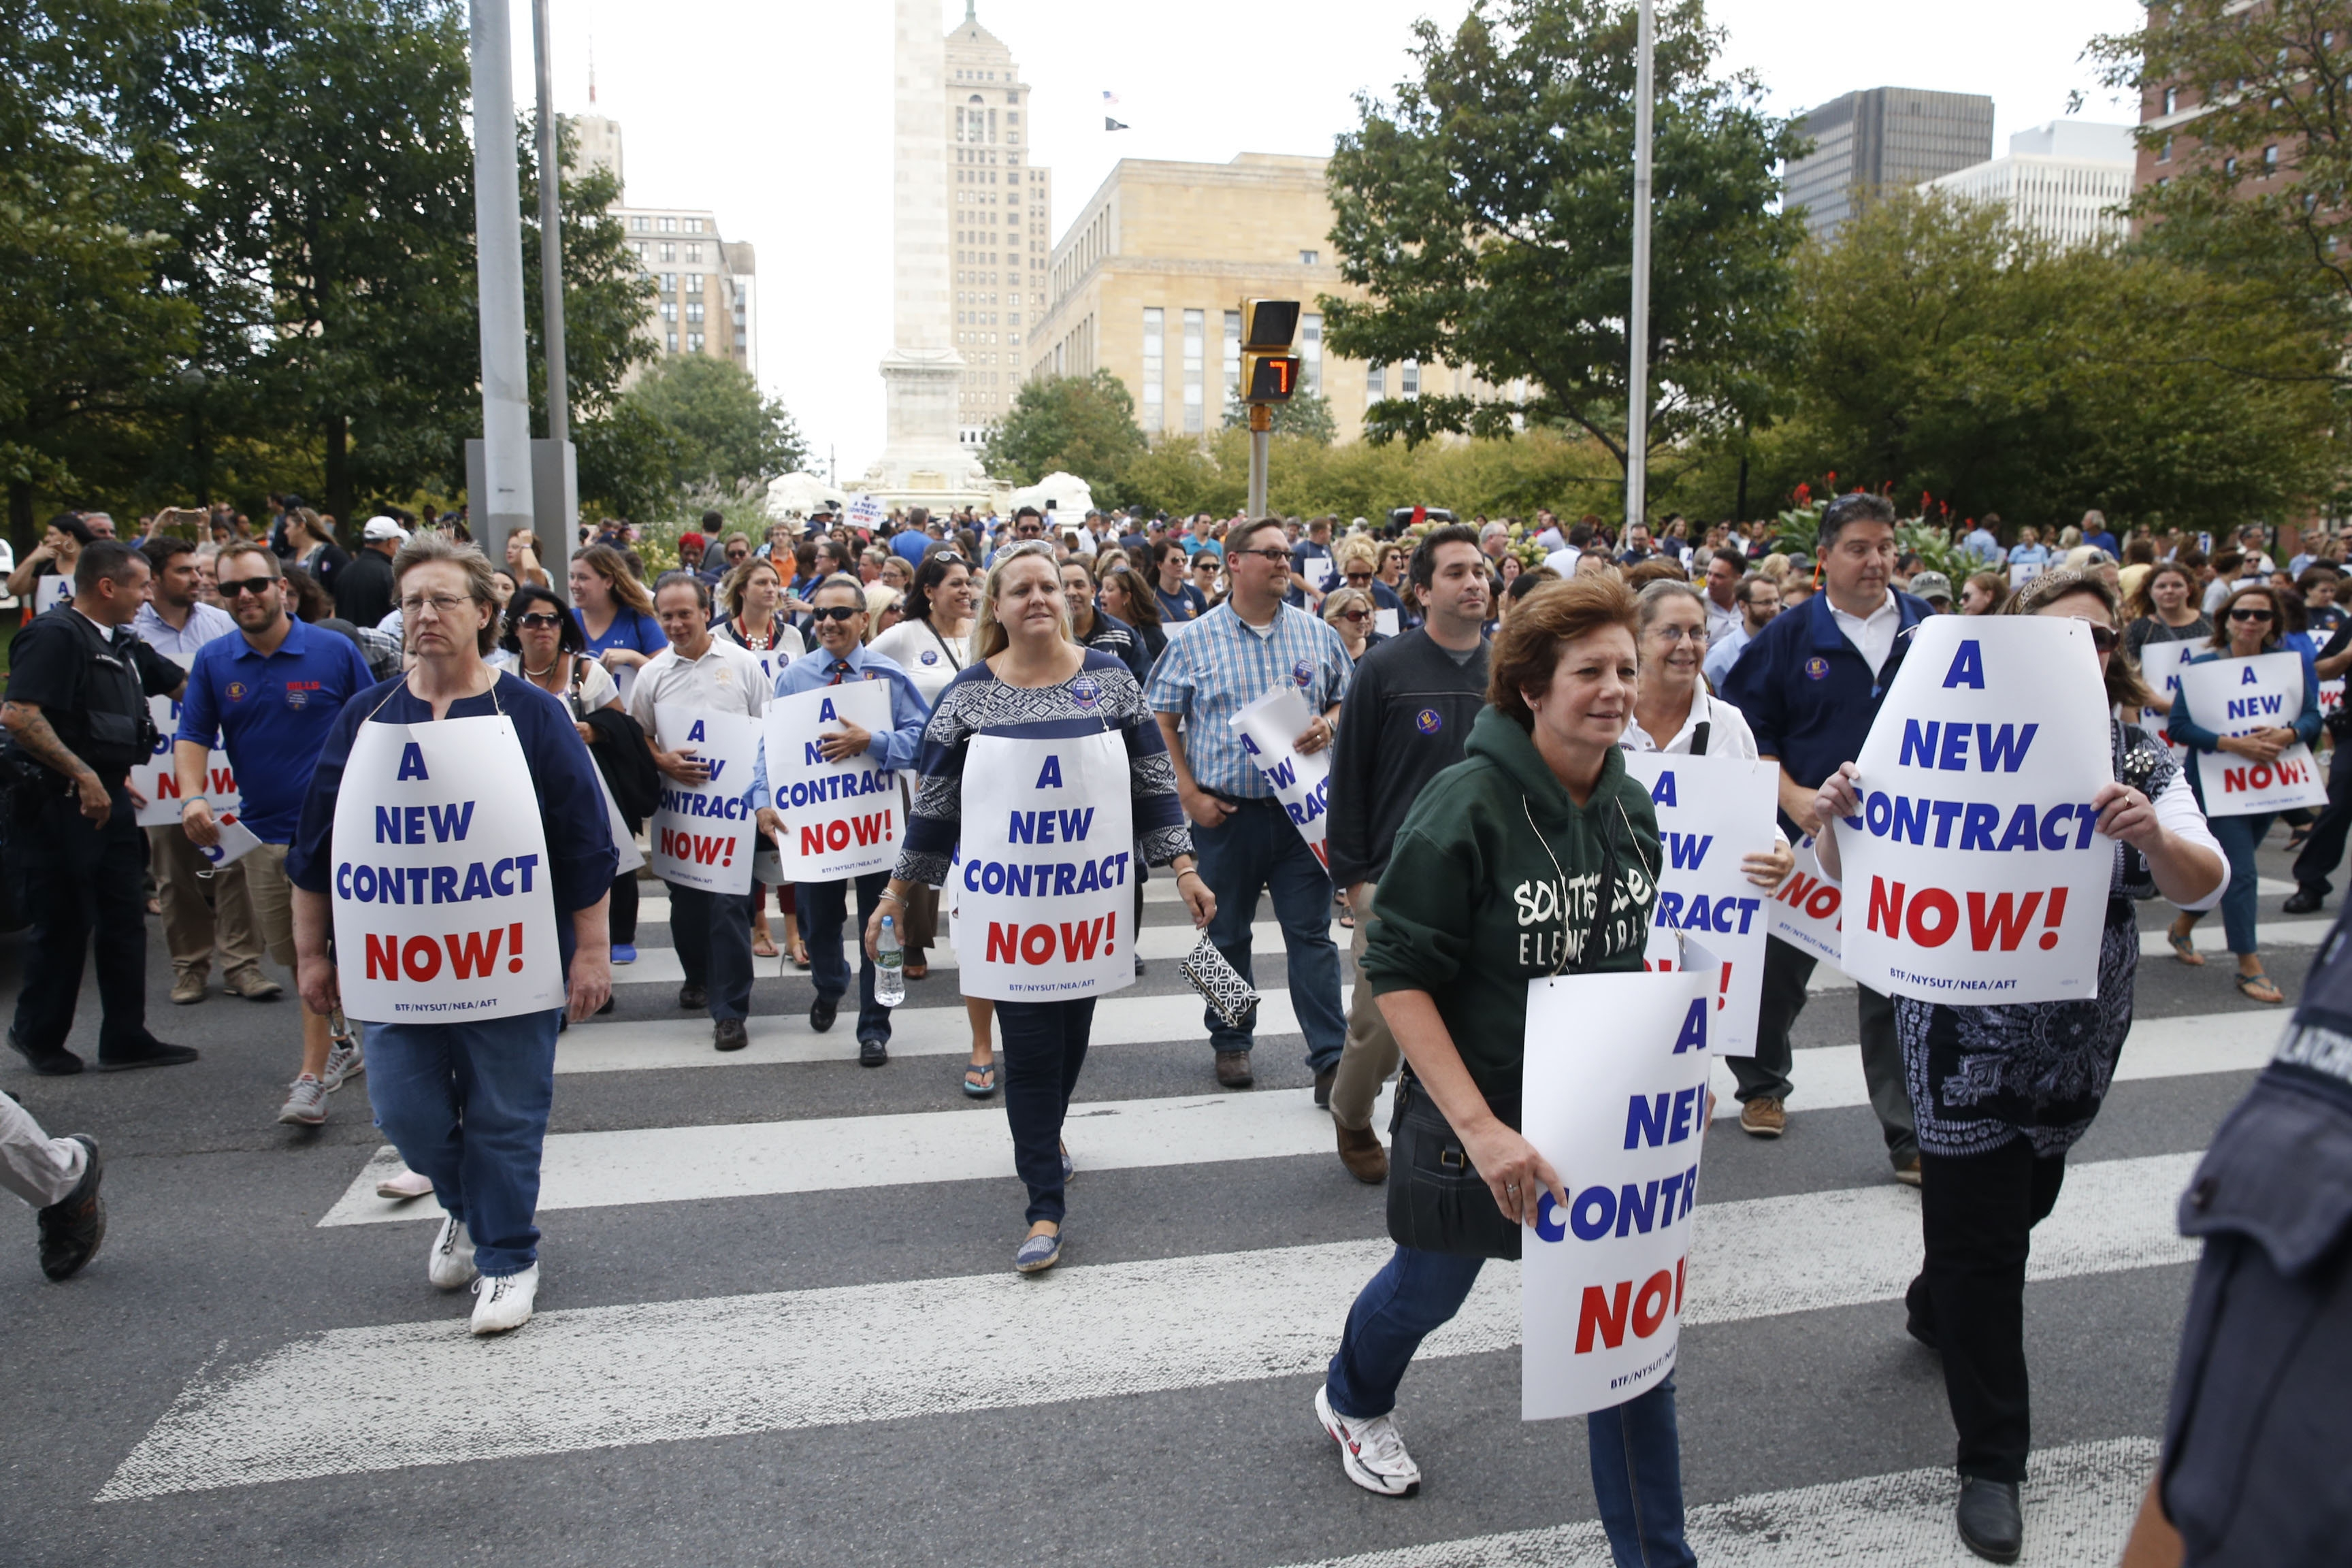 Teachers, who demonstrated in Niagara Square two weeks ago, deserve a new contract, but agreement should not hinge on an increase in state aid. (Robert Kirkham/Buffalo News)